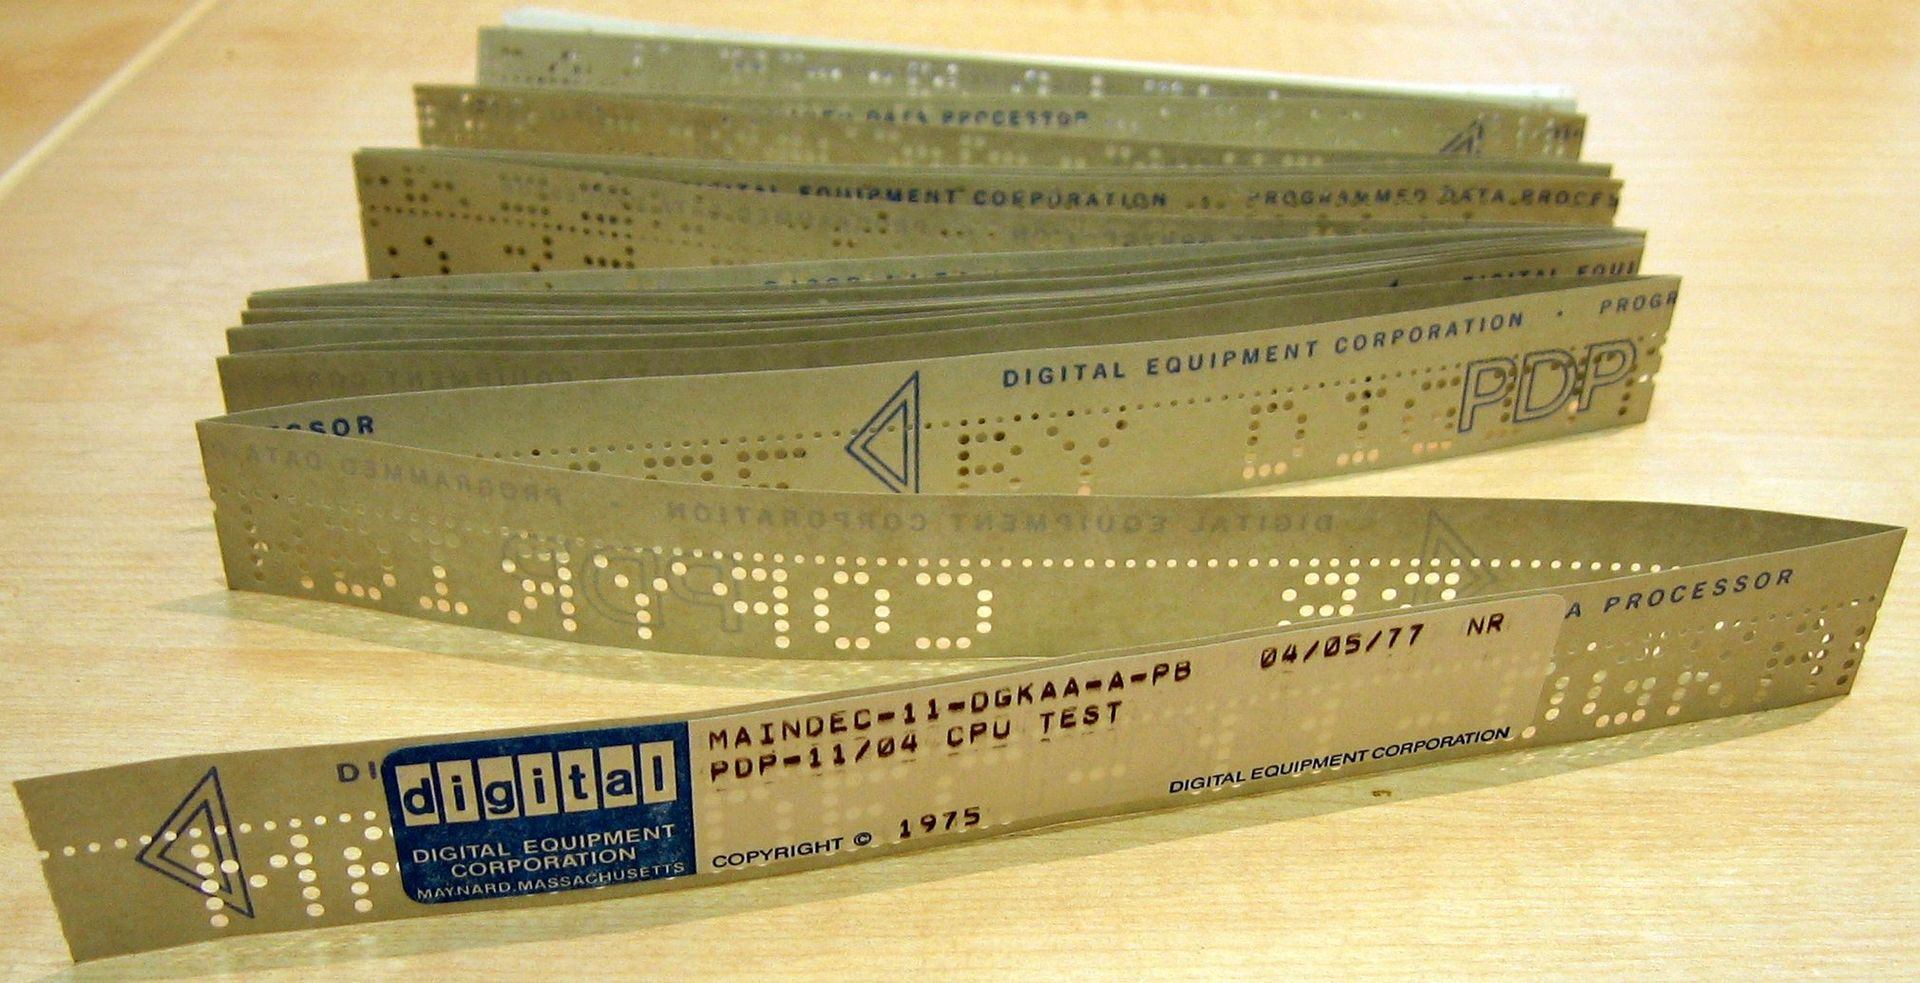 example of fanfold papertape with printed label and punched characters